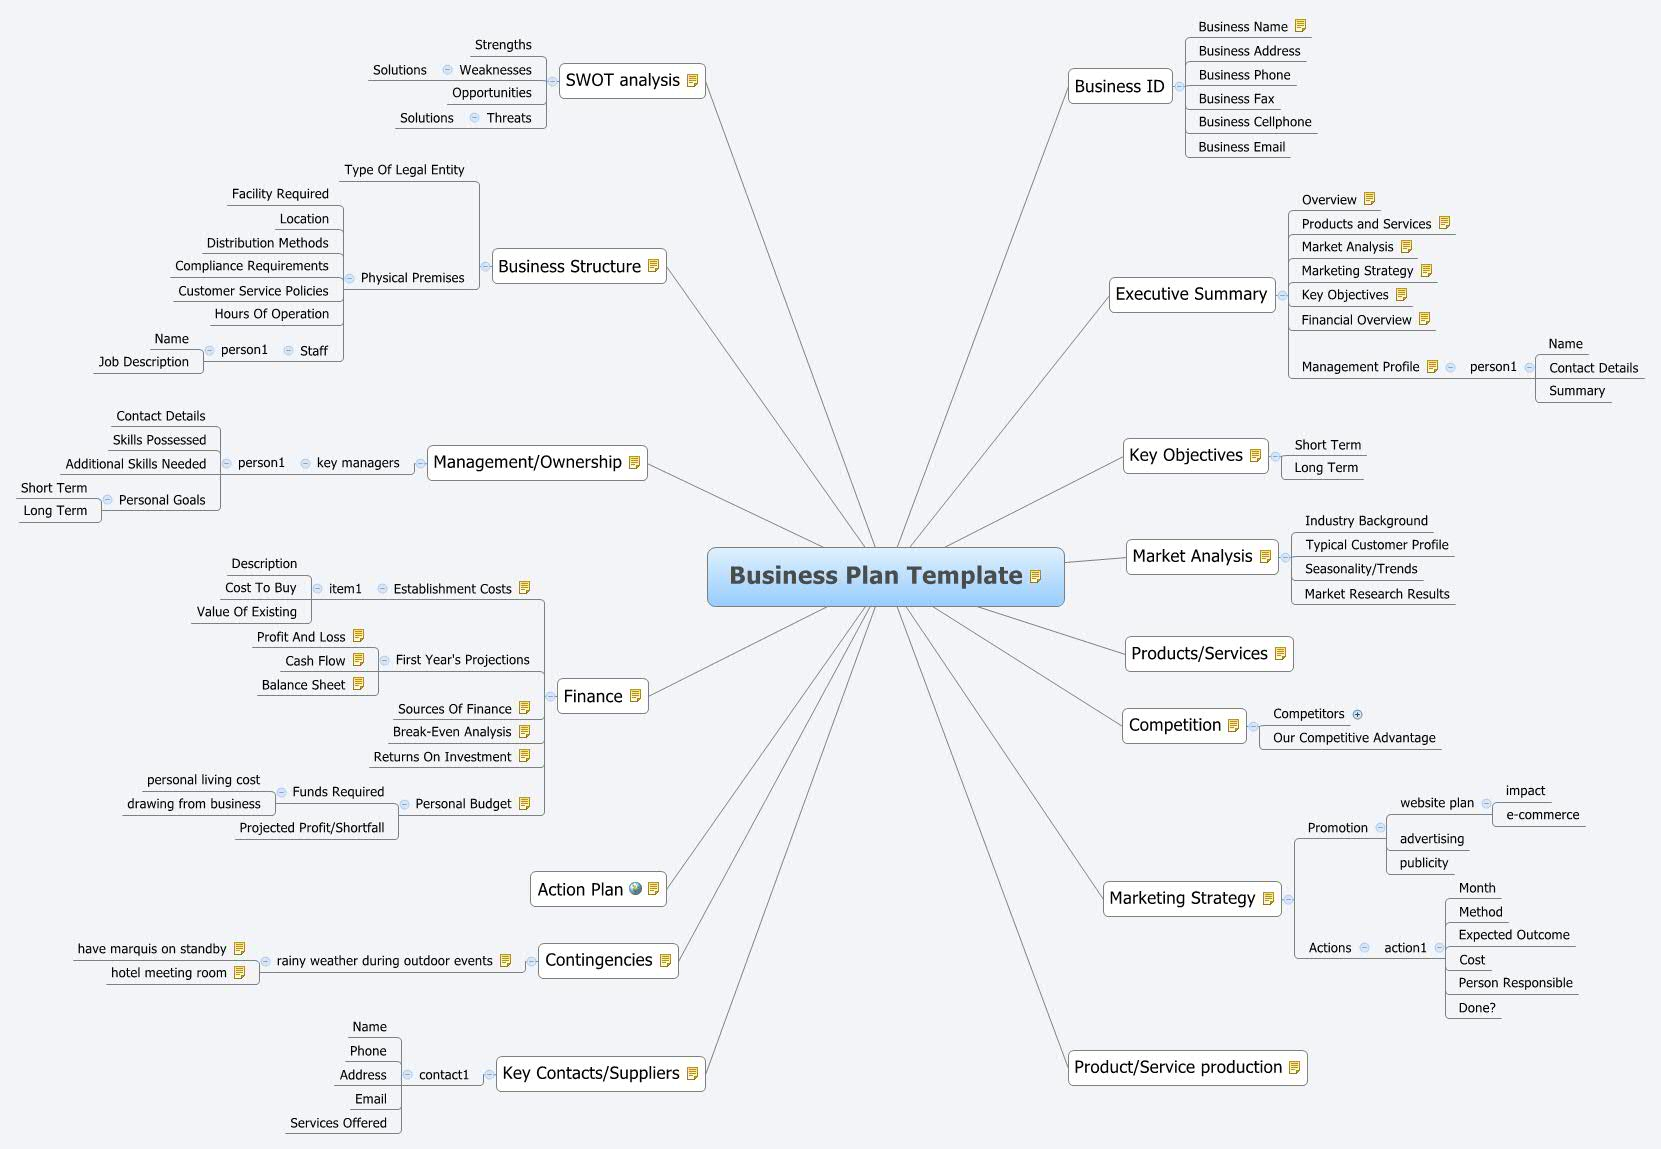 Business Plan Template Xmind Online Library